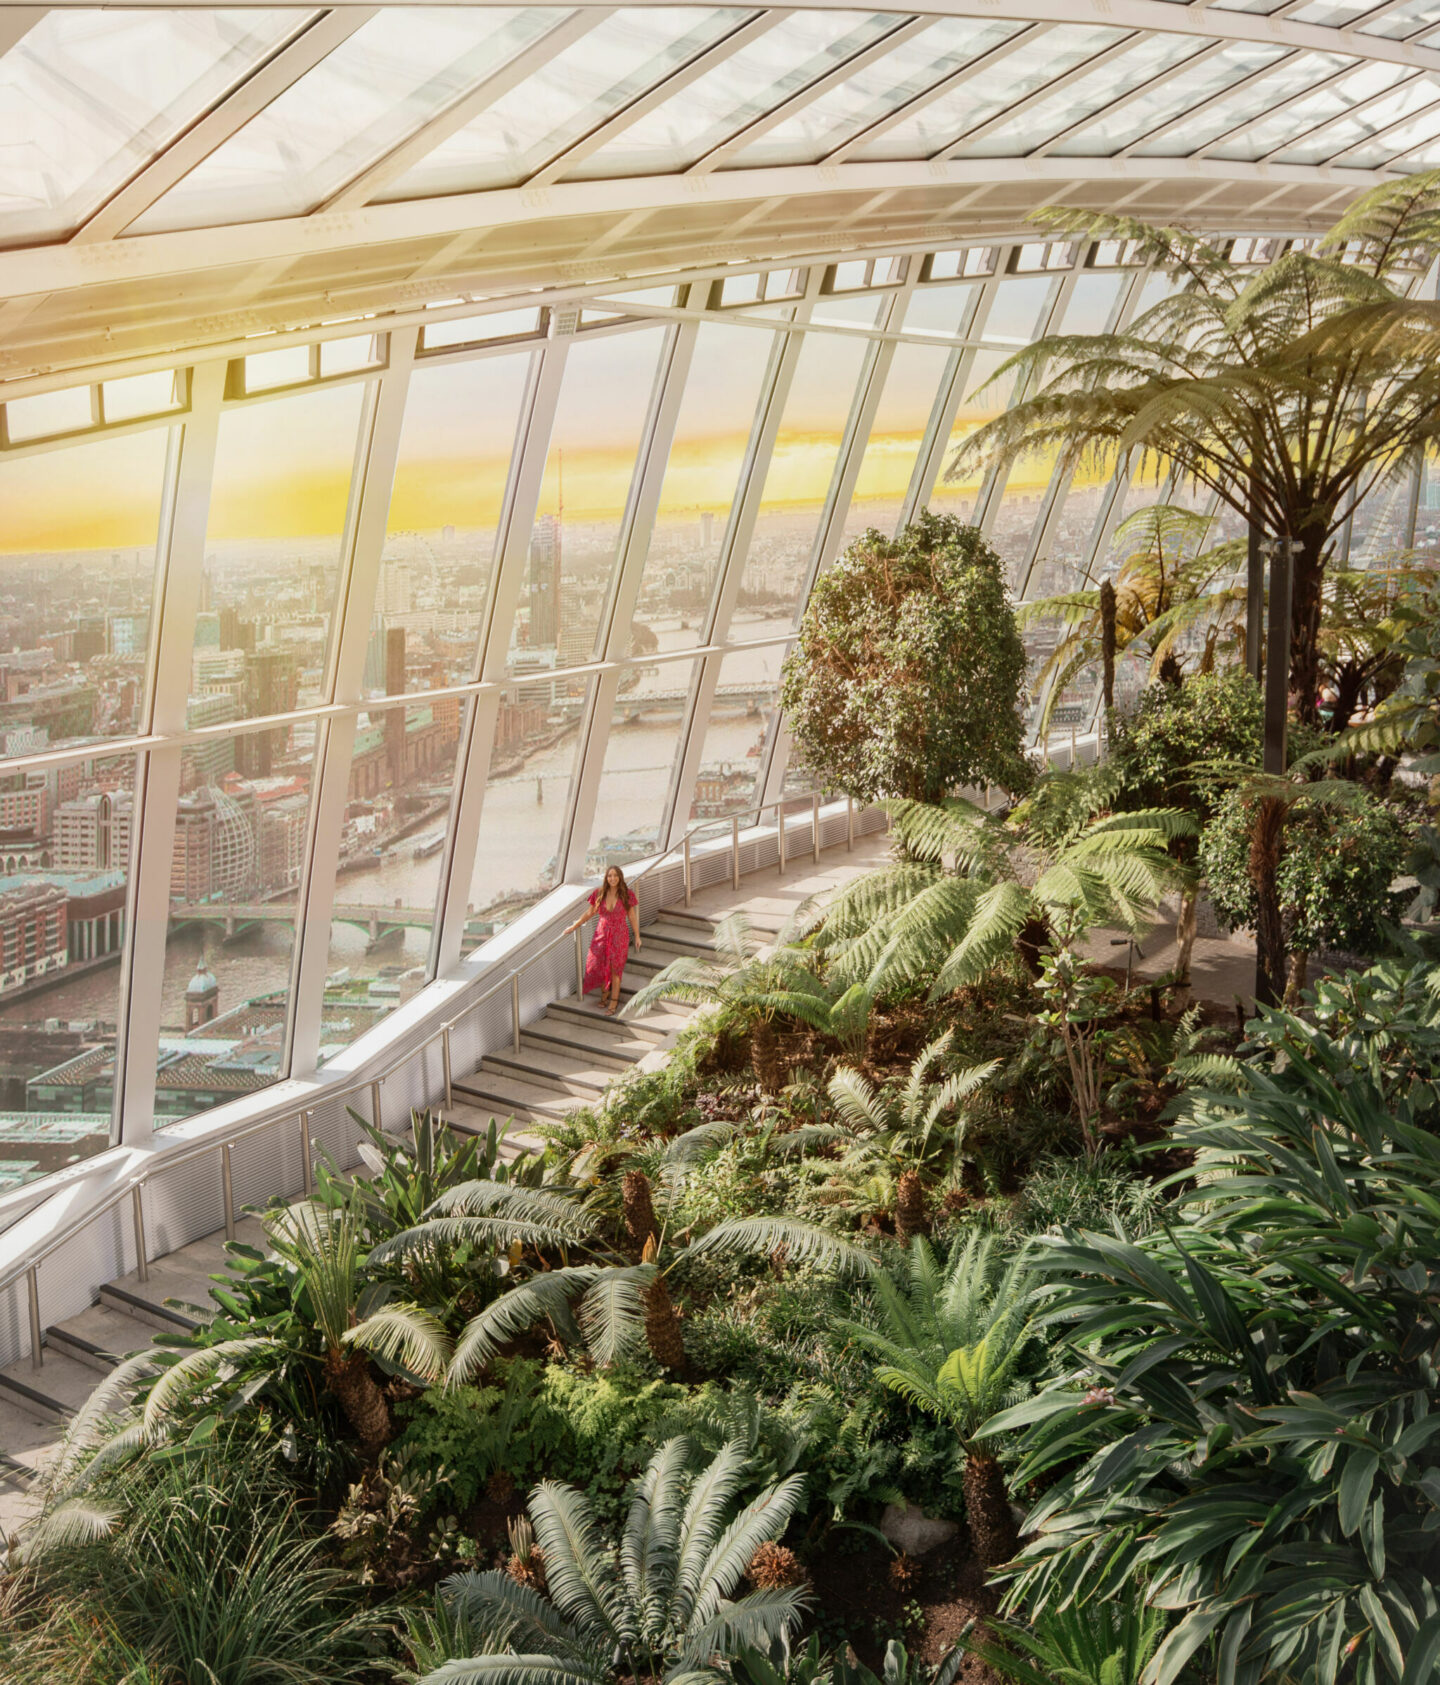 kelseyinlondon moving to london guide how to move to london tips kelsey heinrichs skygarden